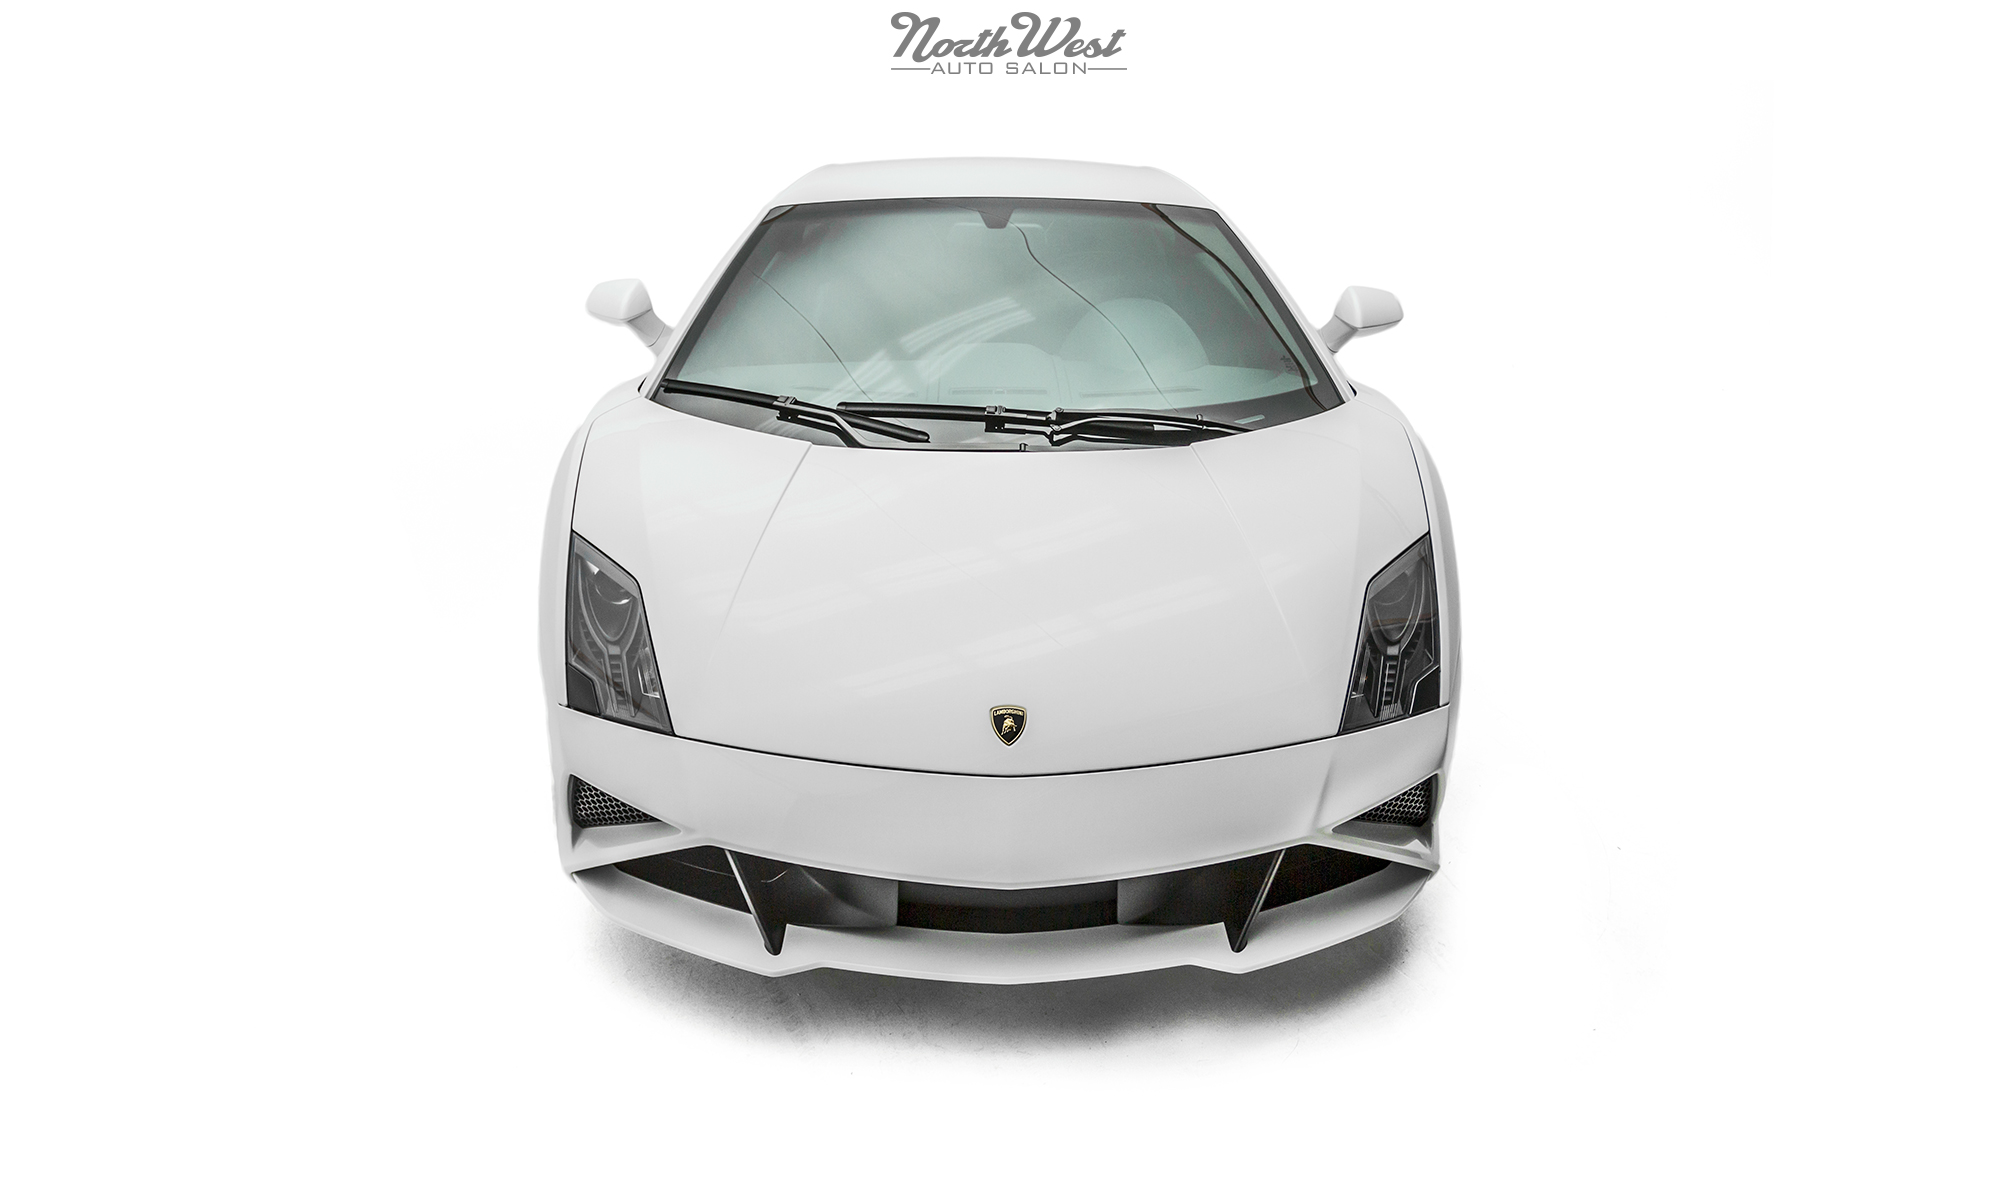 NorthWest Auto Salon 2013 Lamborghini Gallardo New Car Detail Full Frontal Clear Bra Protection